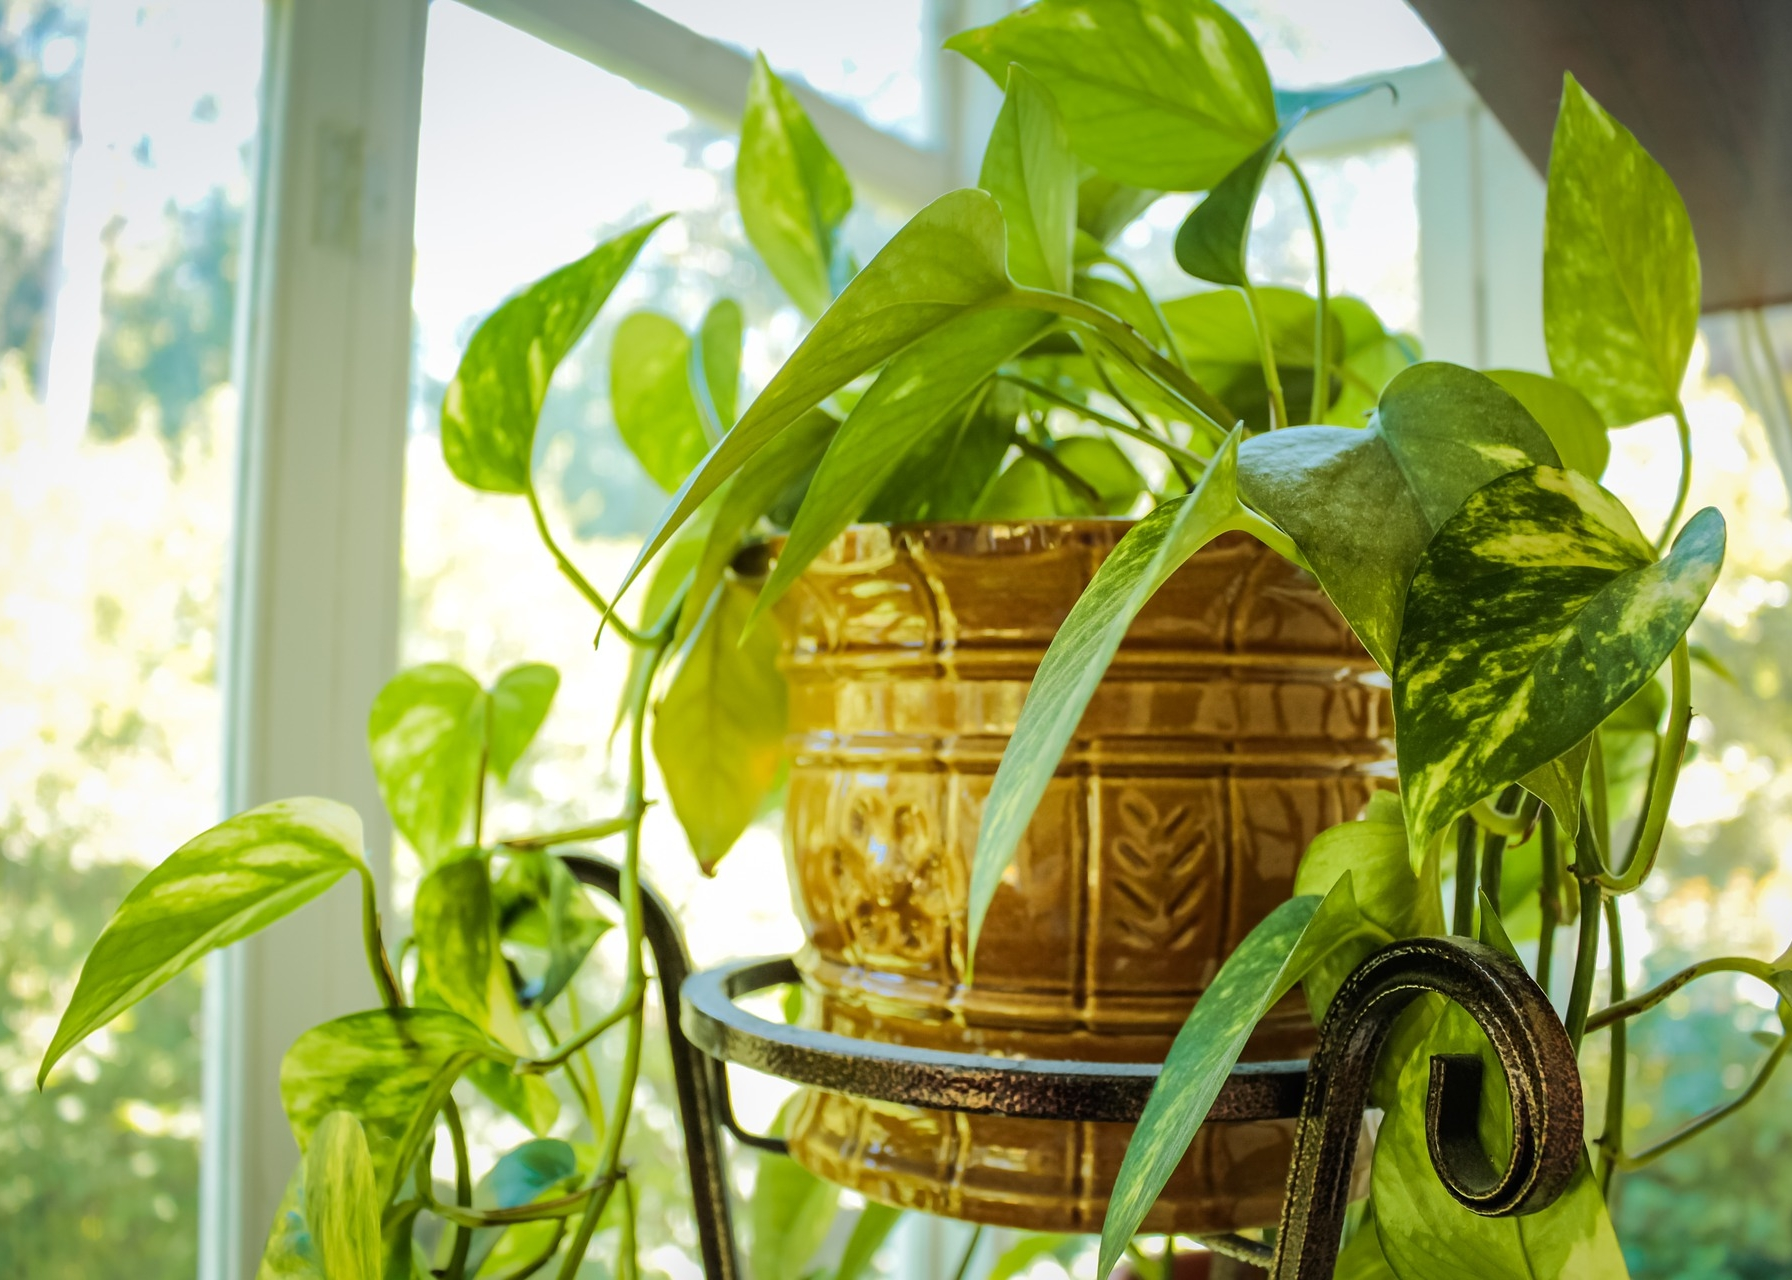 Houseplant guide how to care for indoor plants the old farmers houseplant guide how to care for indoor plants the old farmers almanac izmirmasajfo